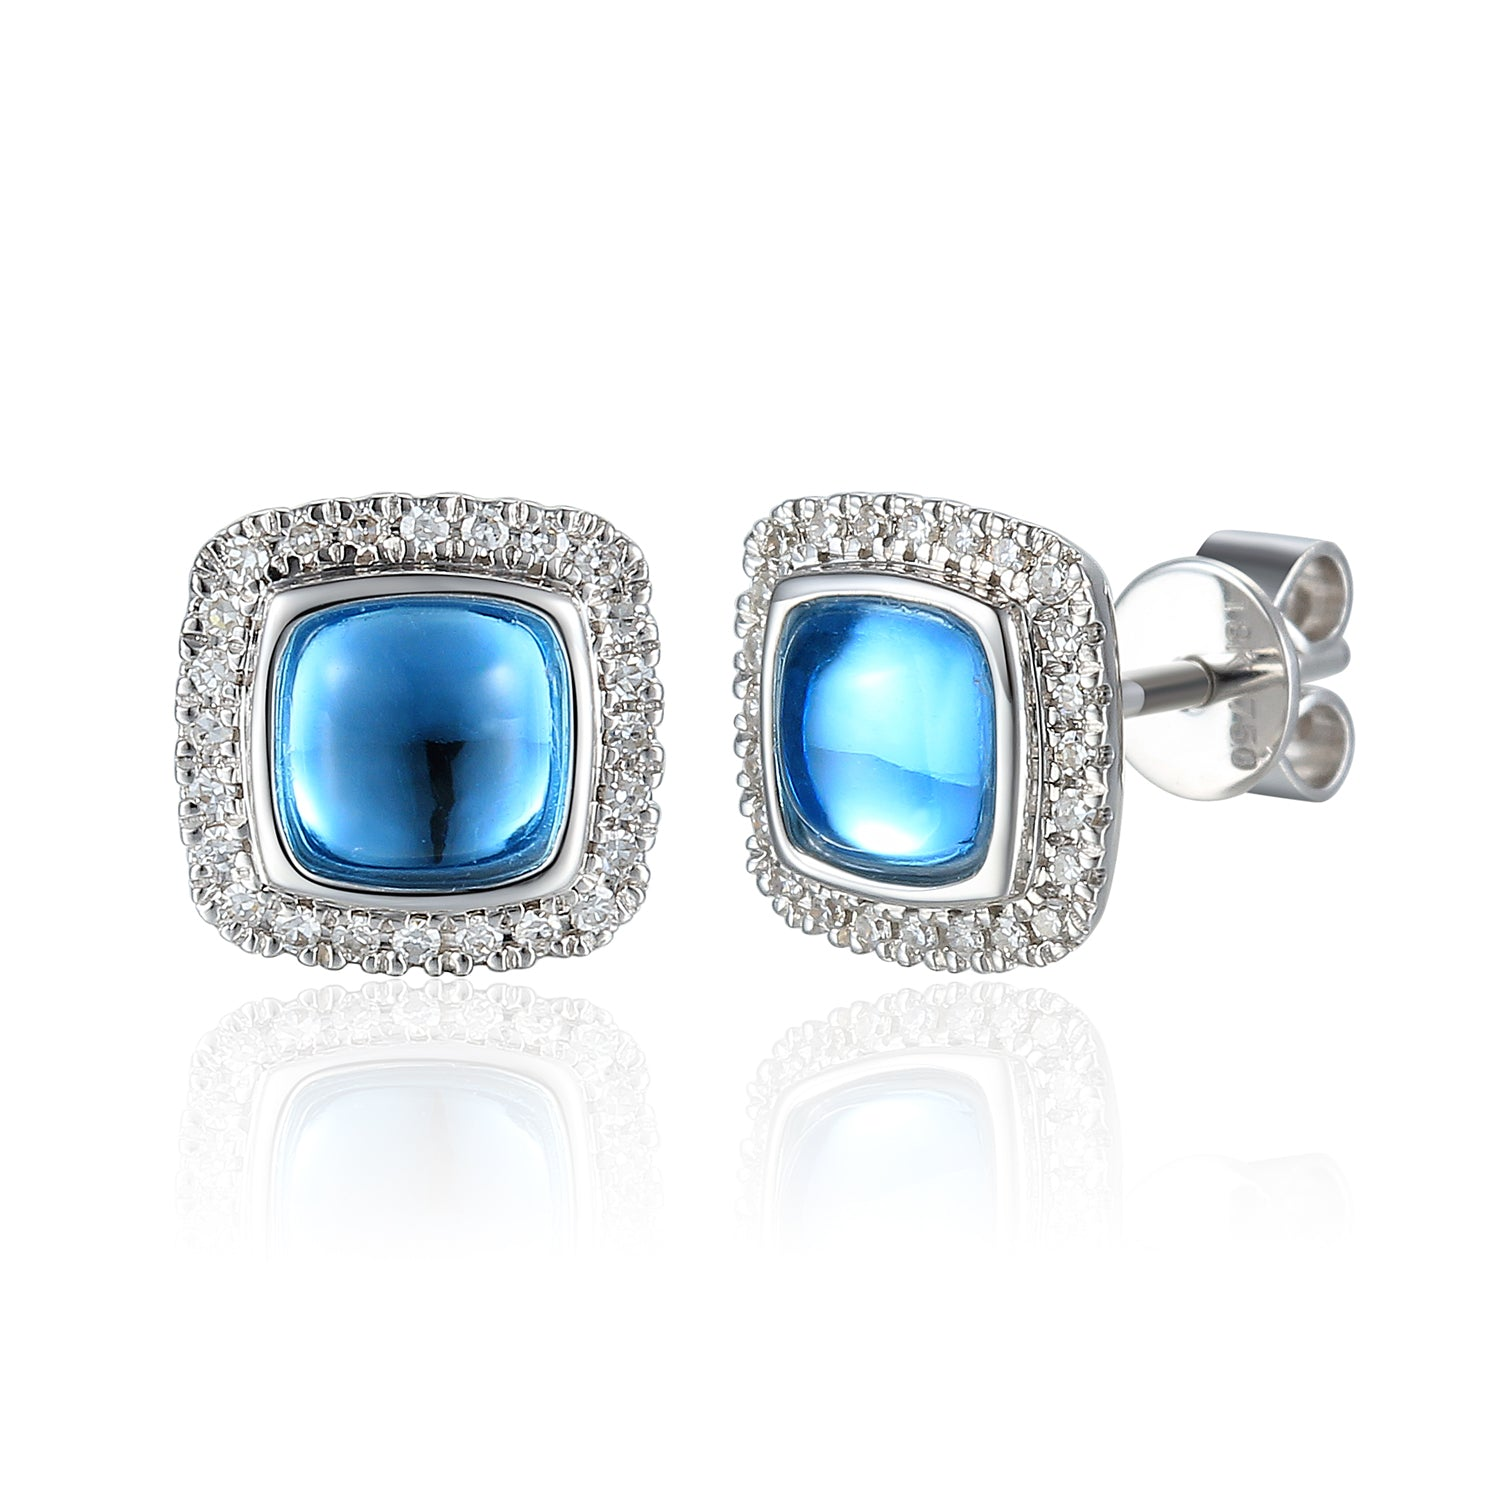 55470dff4 Buy 9ct White Gold Cushion Cabochon Blue Topaz and Diamond Earring ...